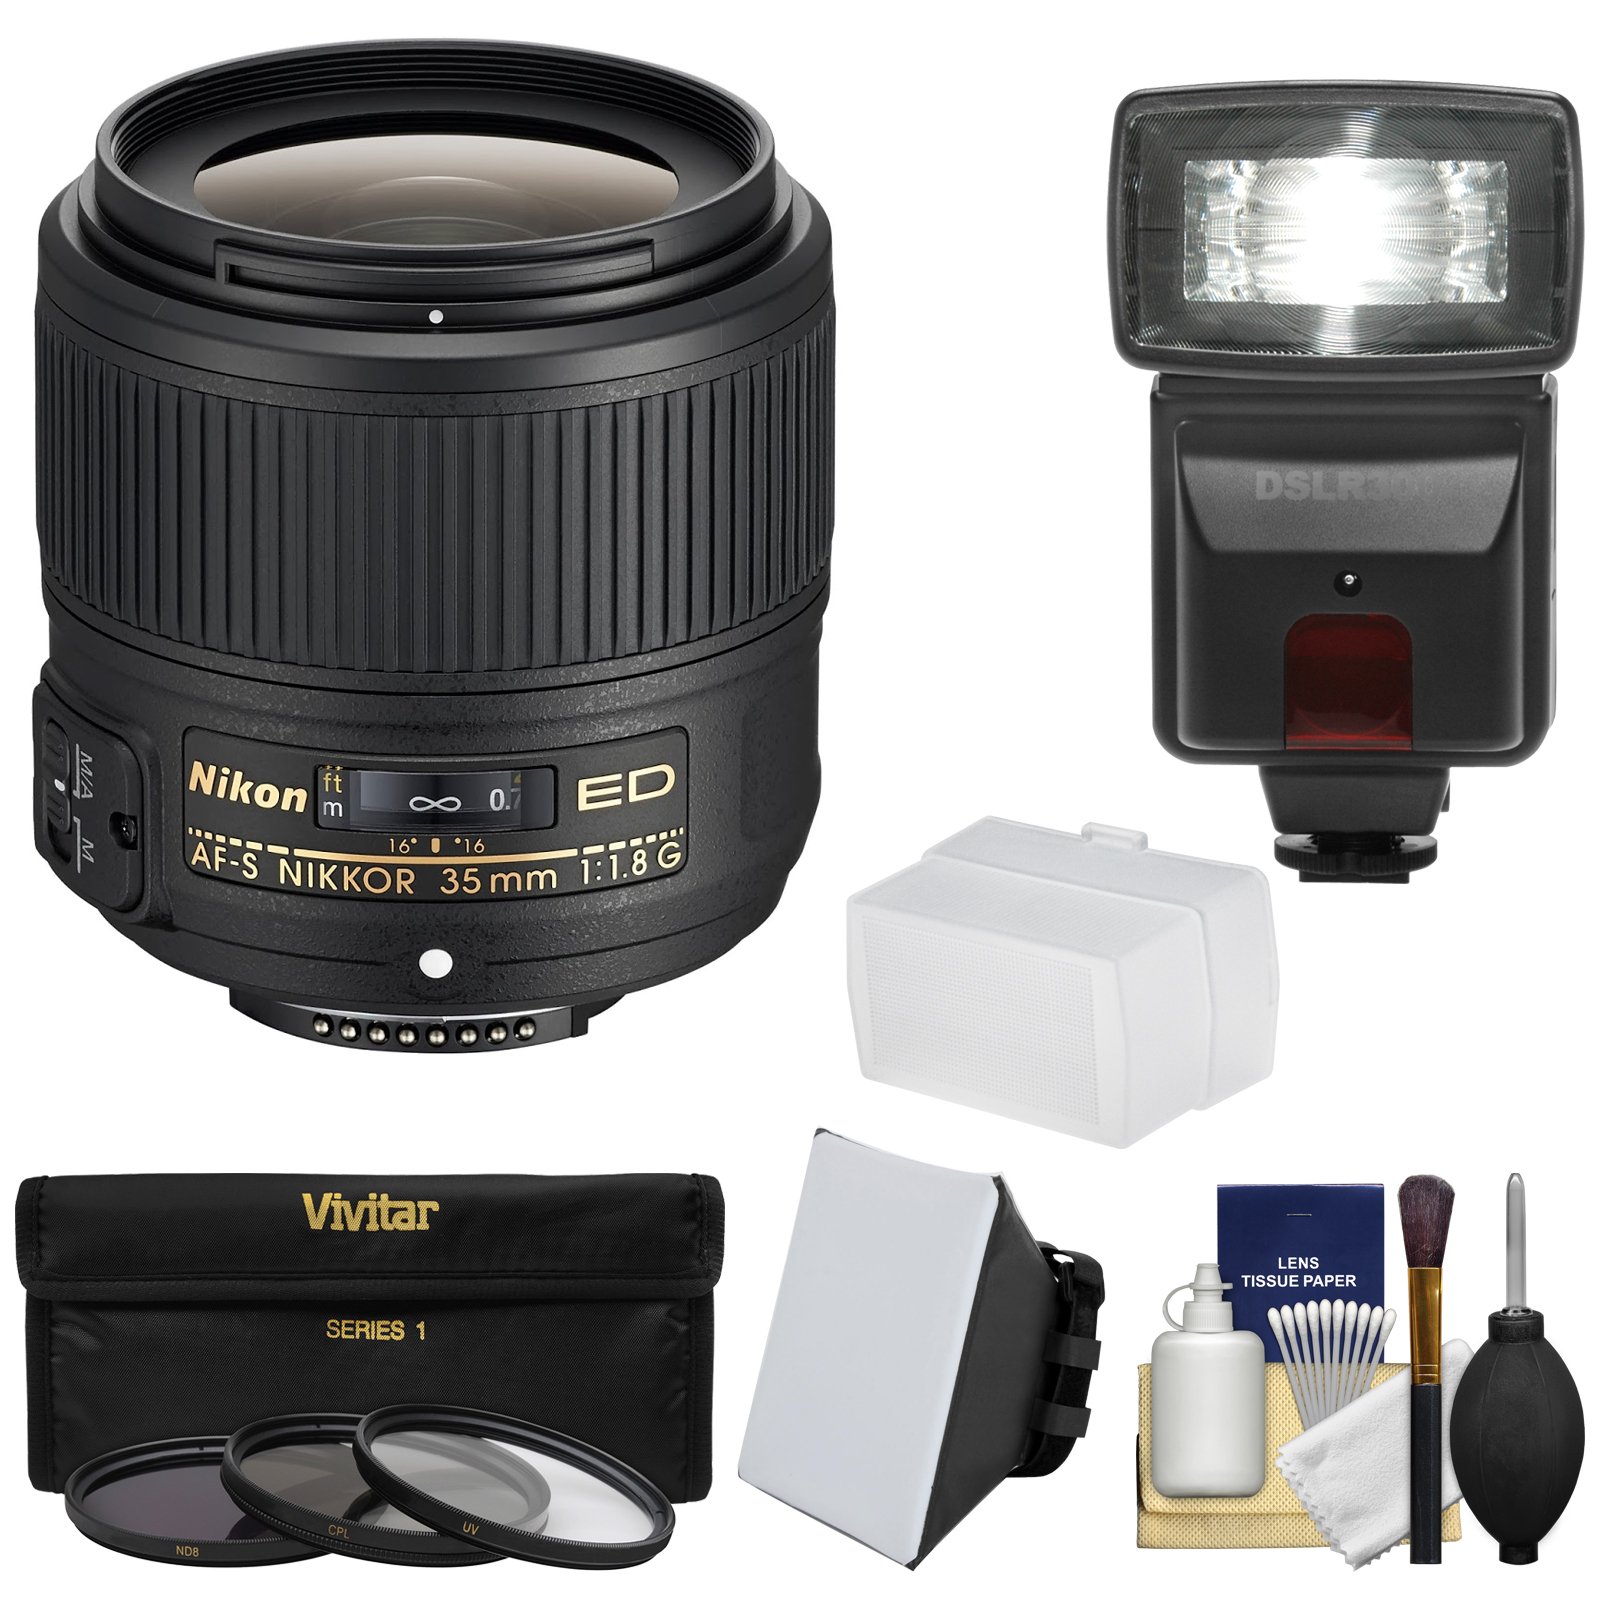 Nikon 35mm f/1.8G AF-S ED Nikkor Lens with 3 Filters + Flash & 2 Diffusers + Kit for D3200, D3300, D5300, D5500, D7100, D7200, D750, D810 Cameras